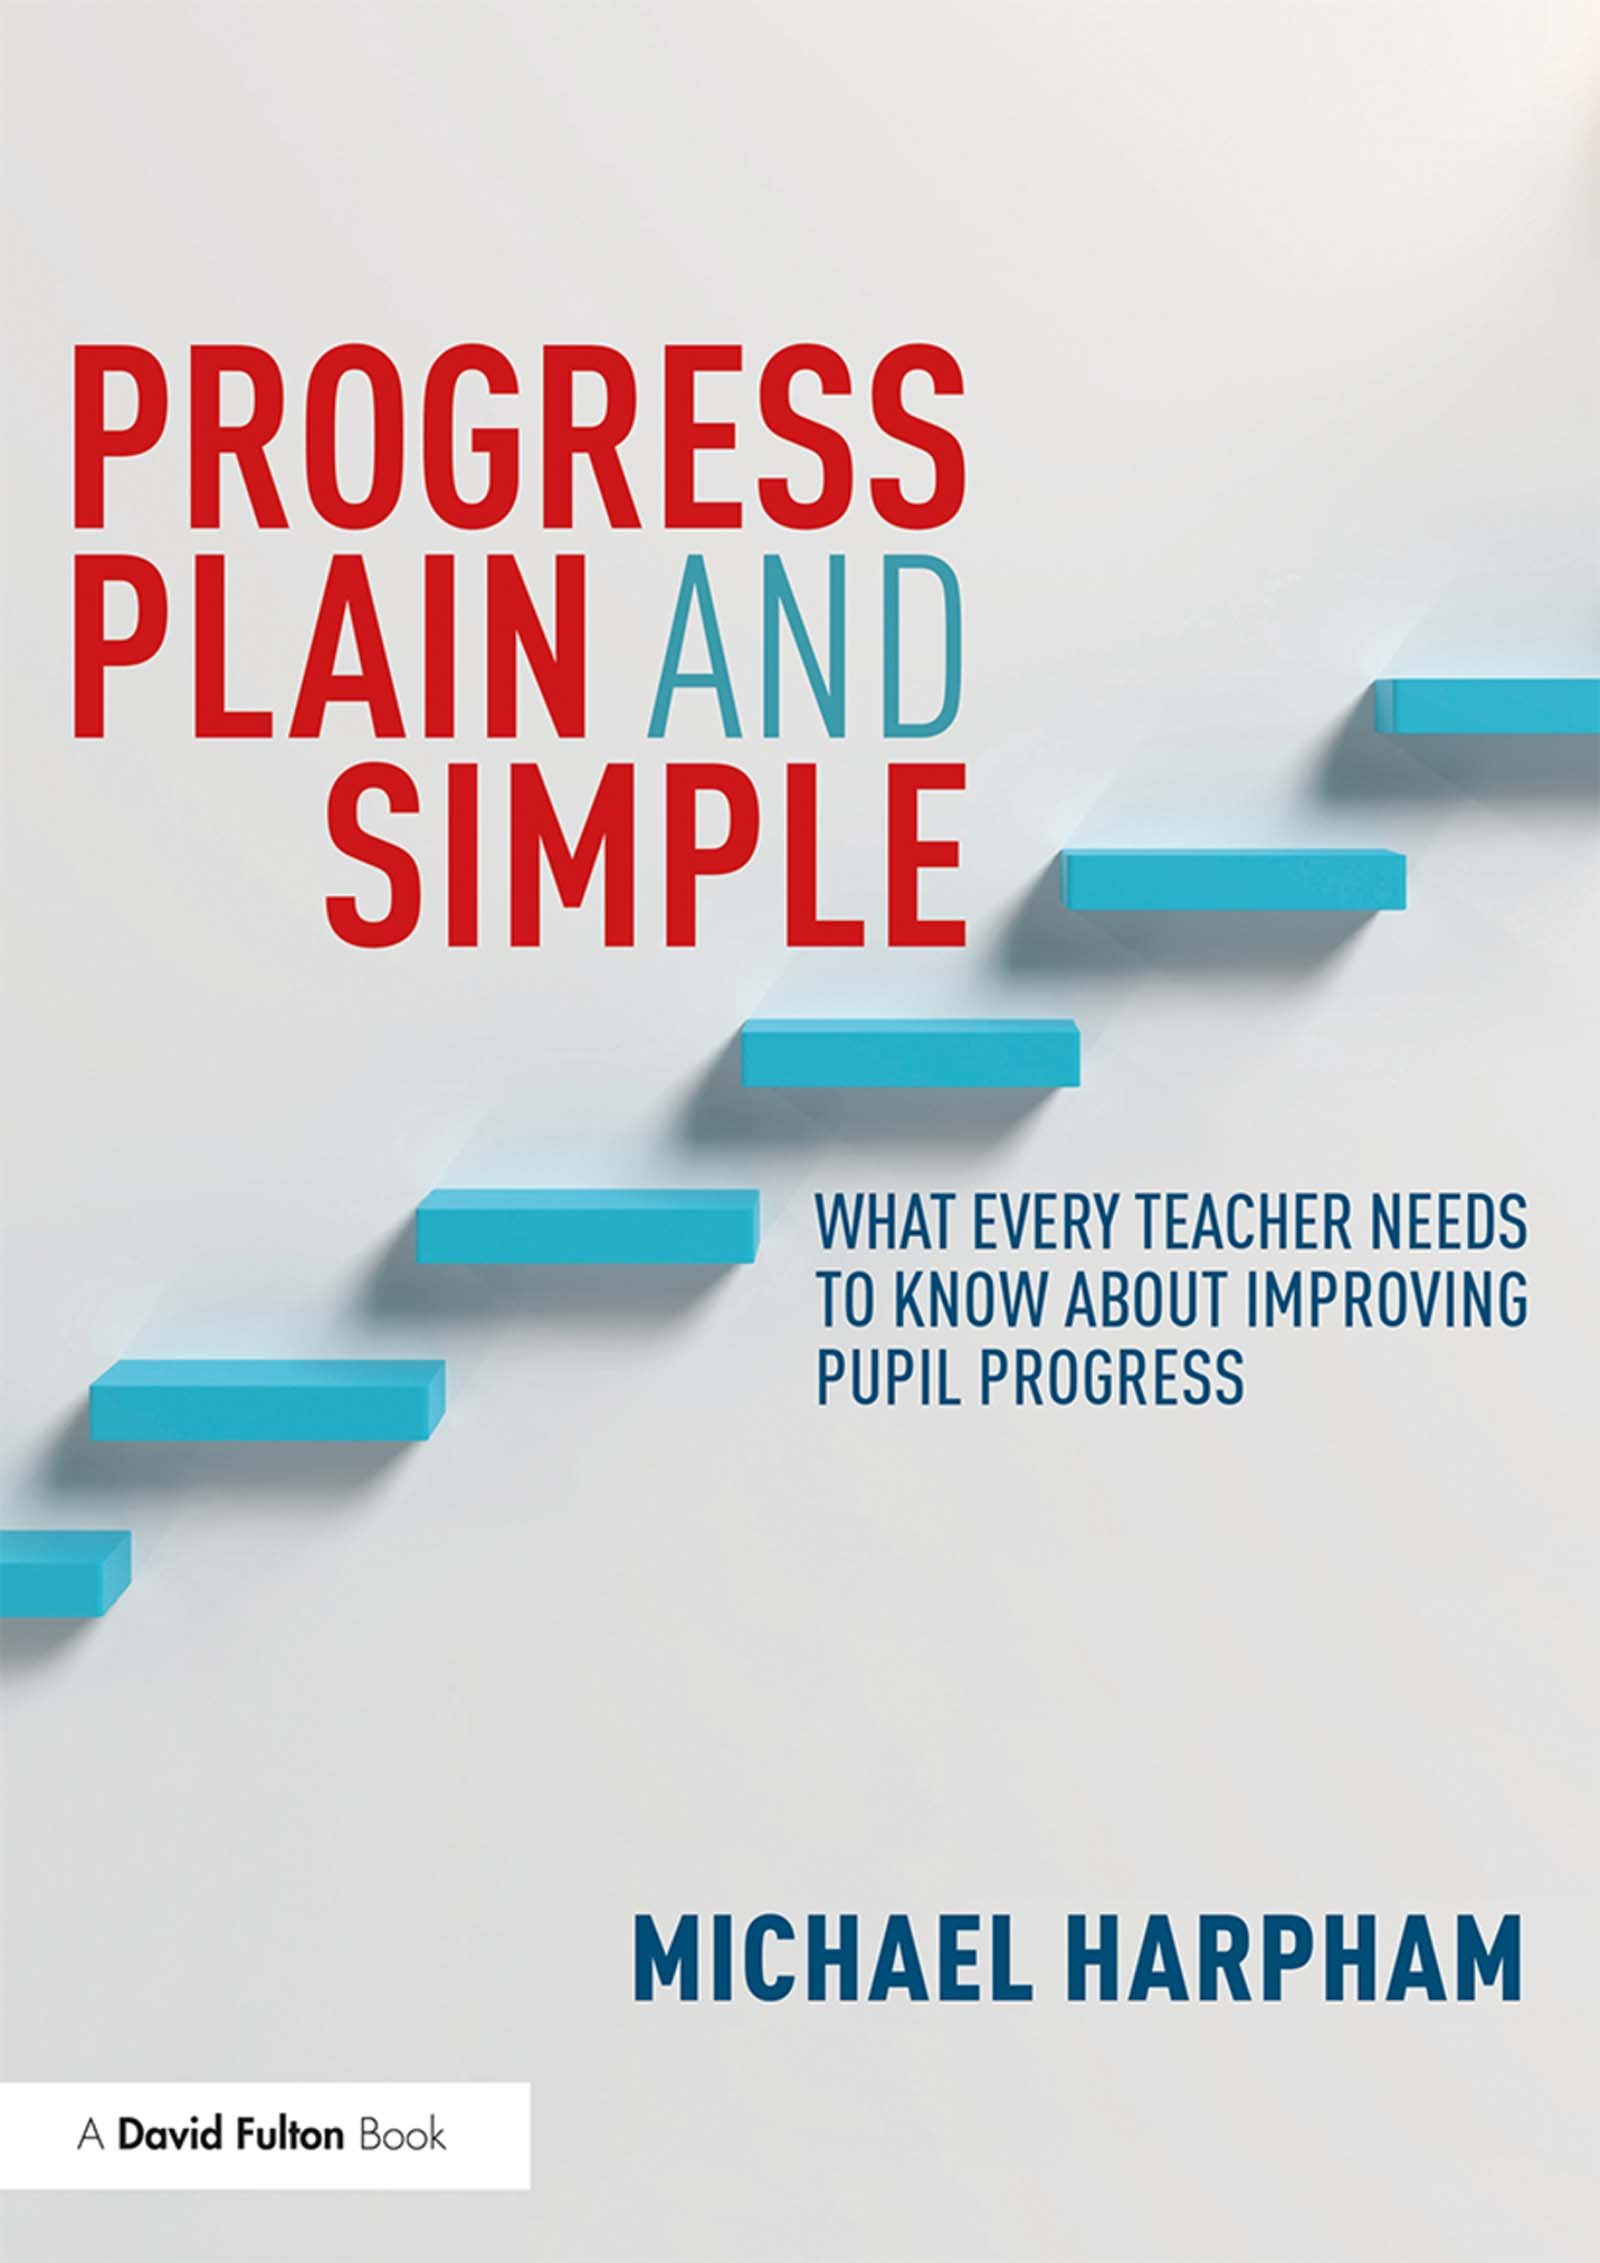 Progress Plain and Simple: What Every Teacher Needs To Know About Improving Pupil Progress book cover